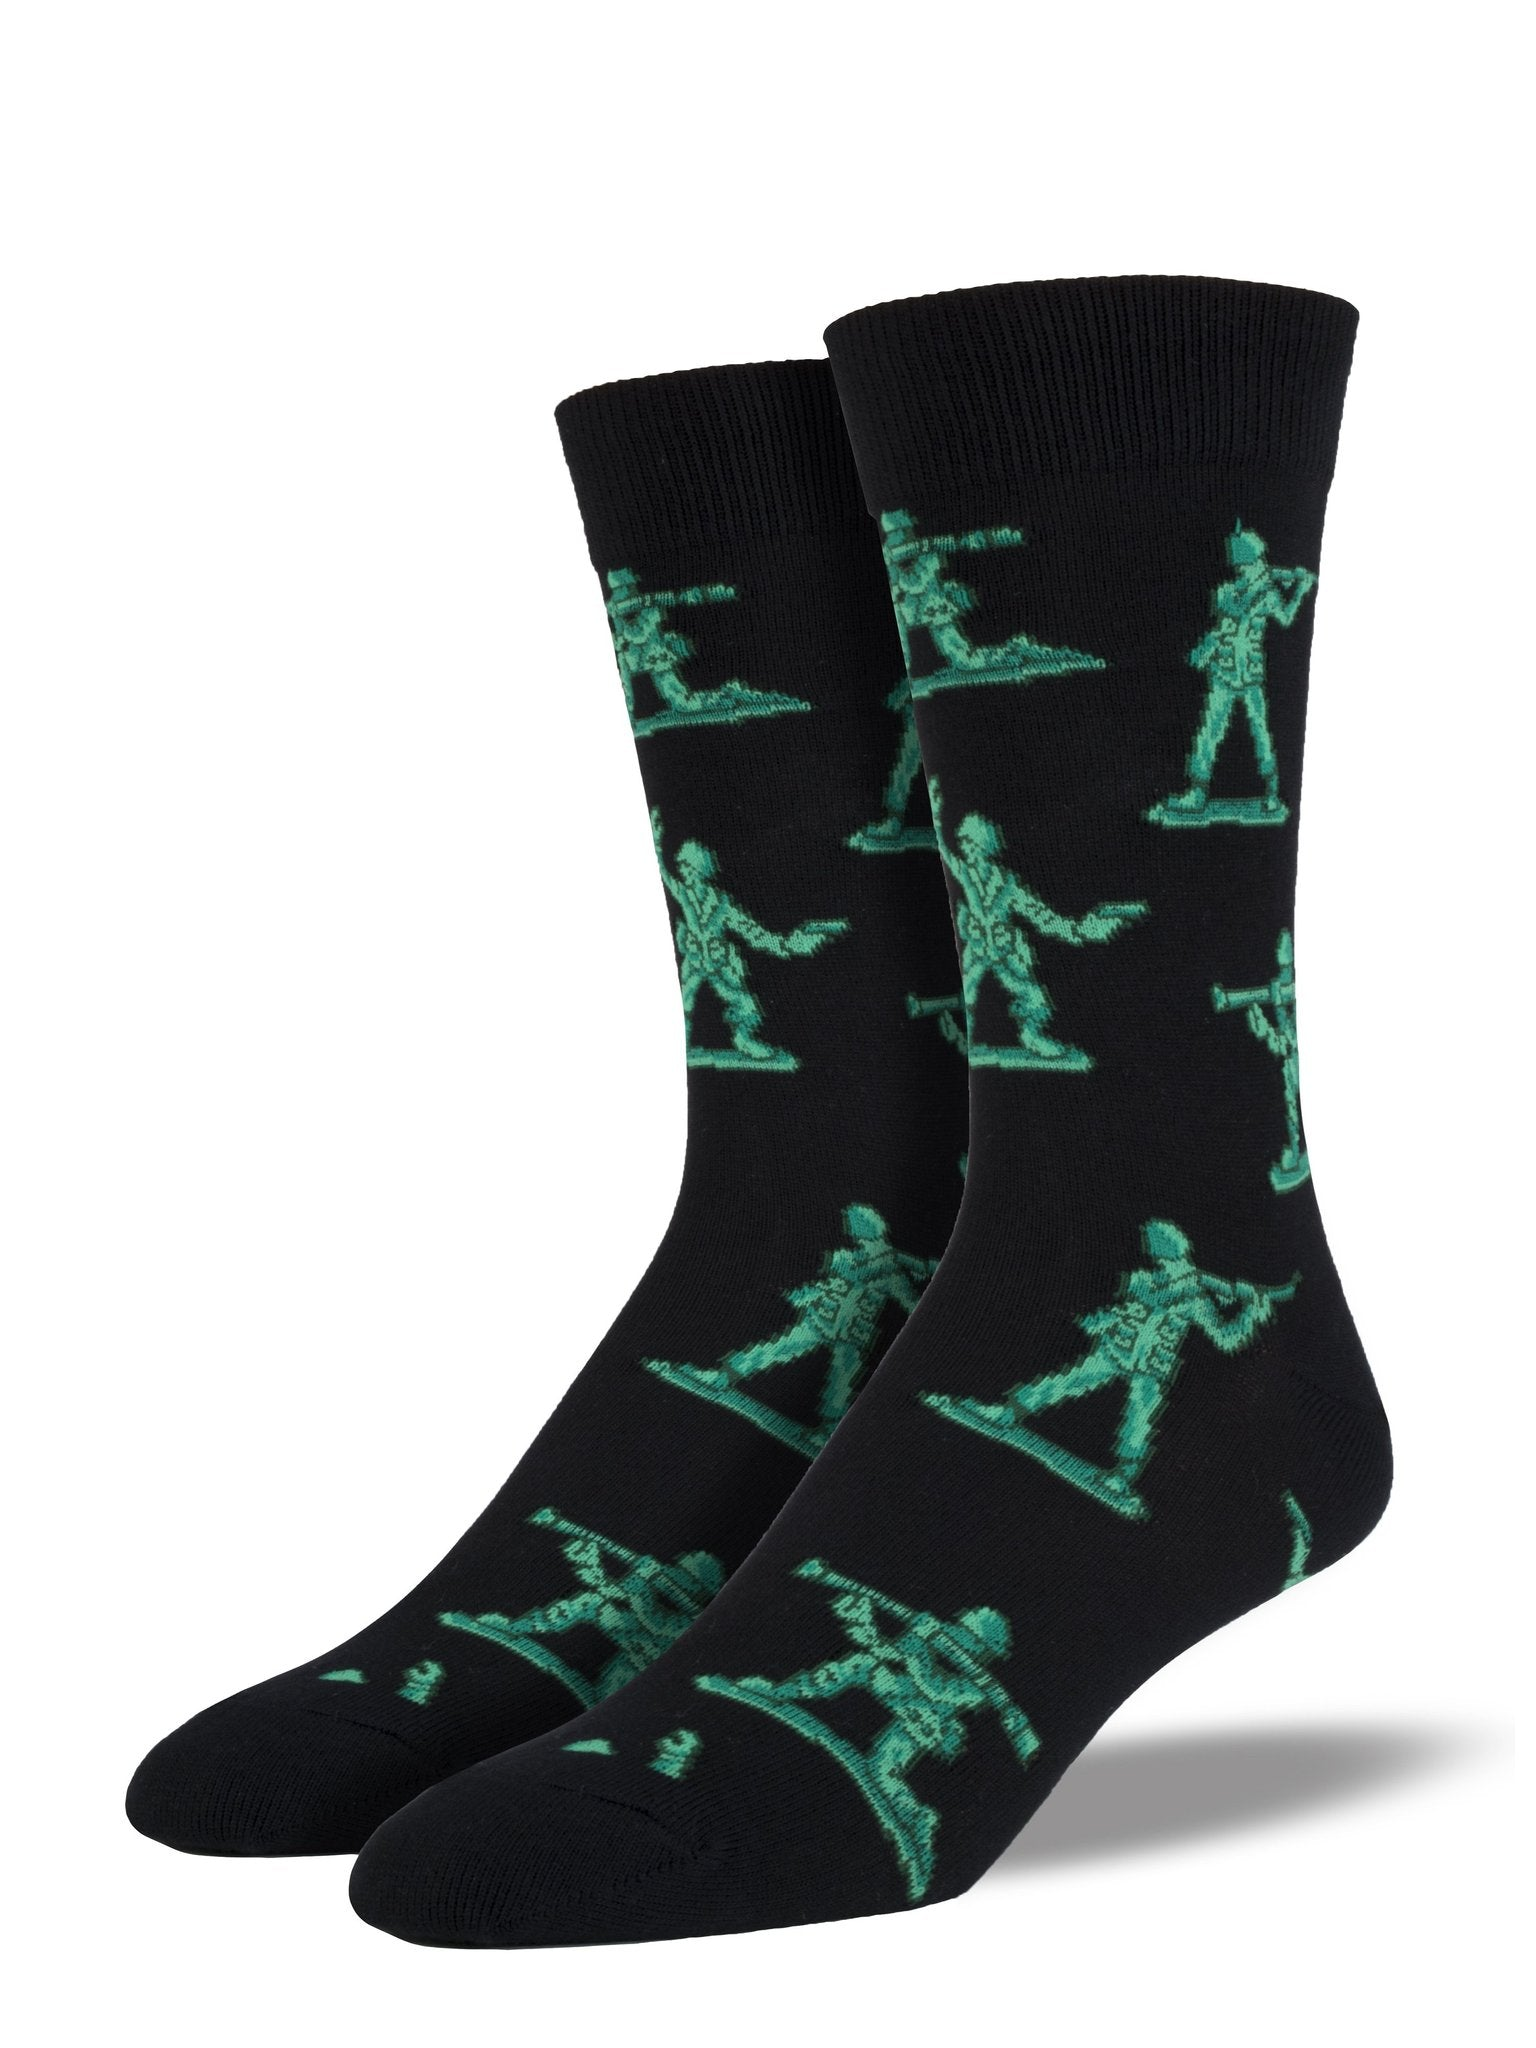 Army Men Socks